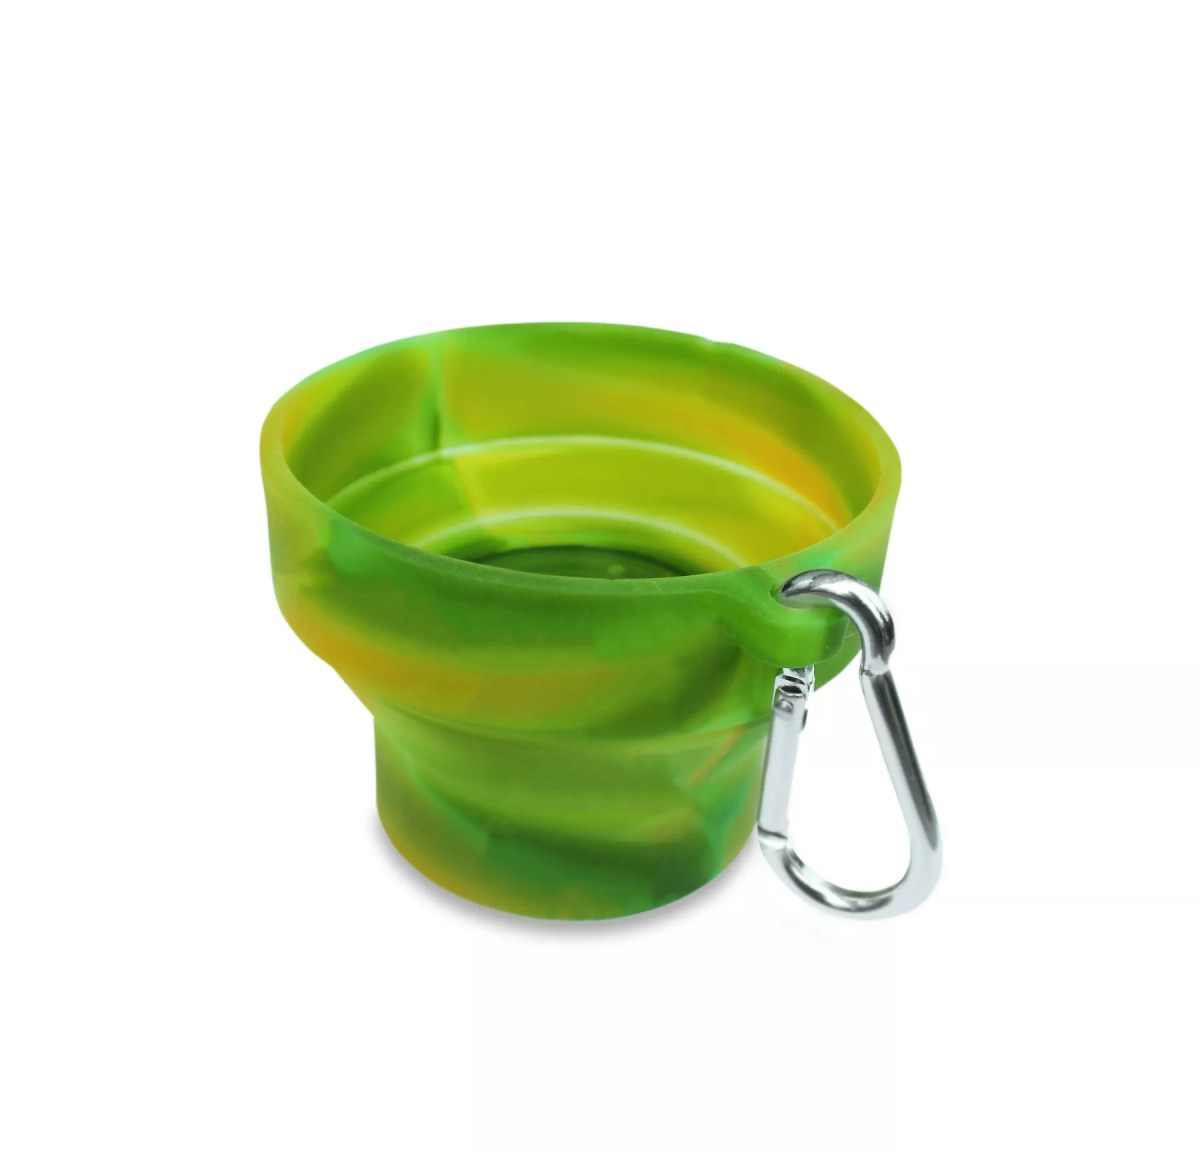 silicone-dog-bowl, portable-pet-bowl, bubi-bowl